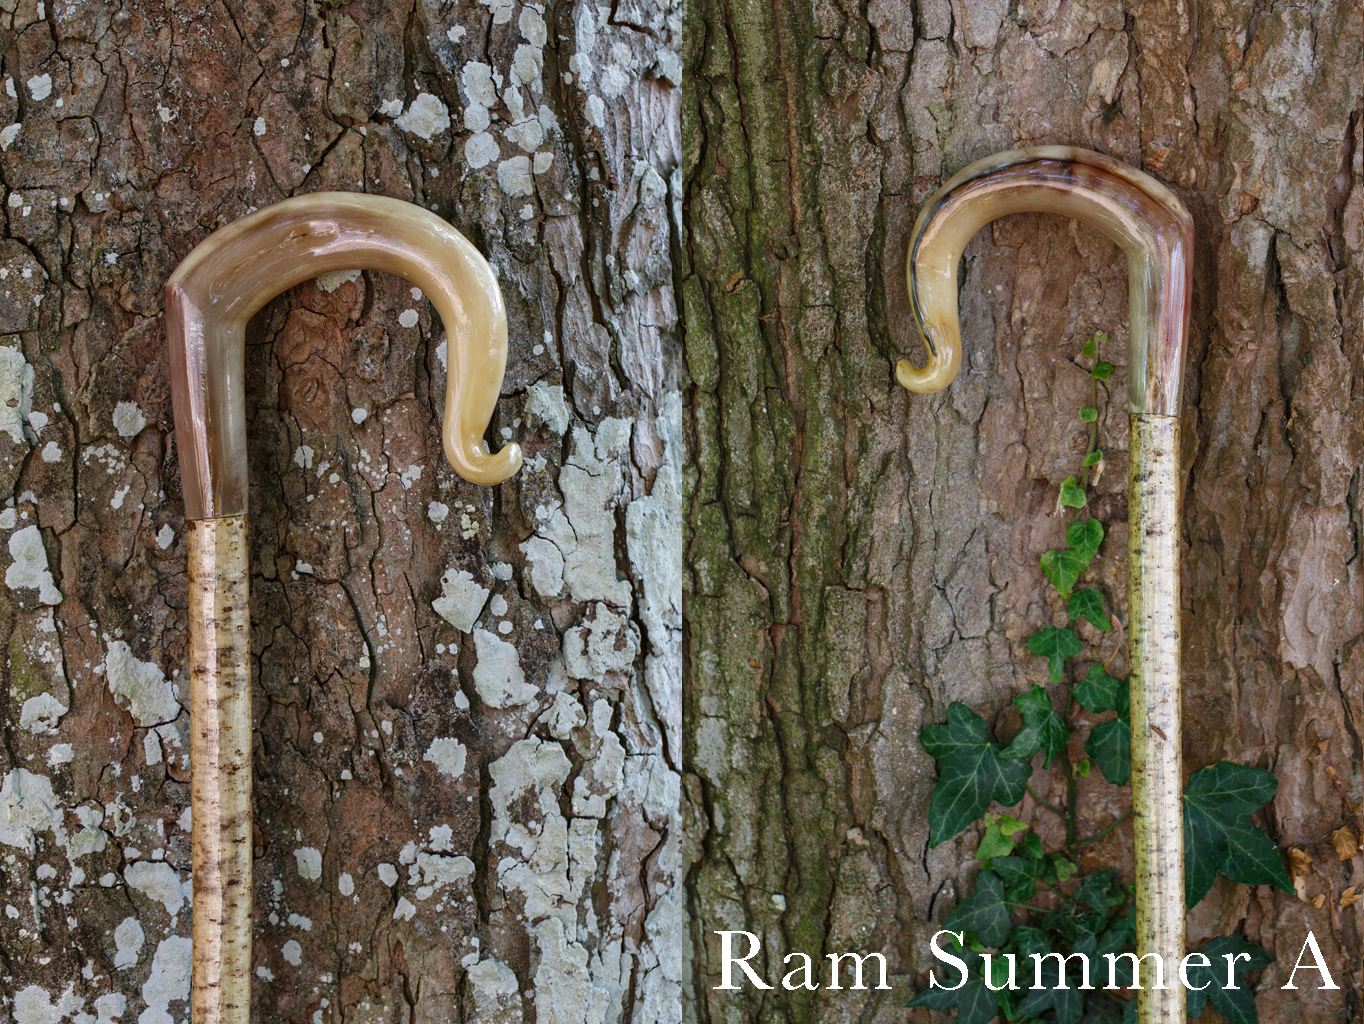 Rams Horn Crook Summer A